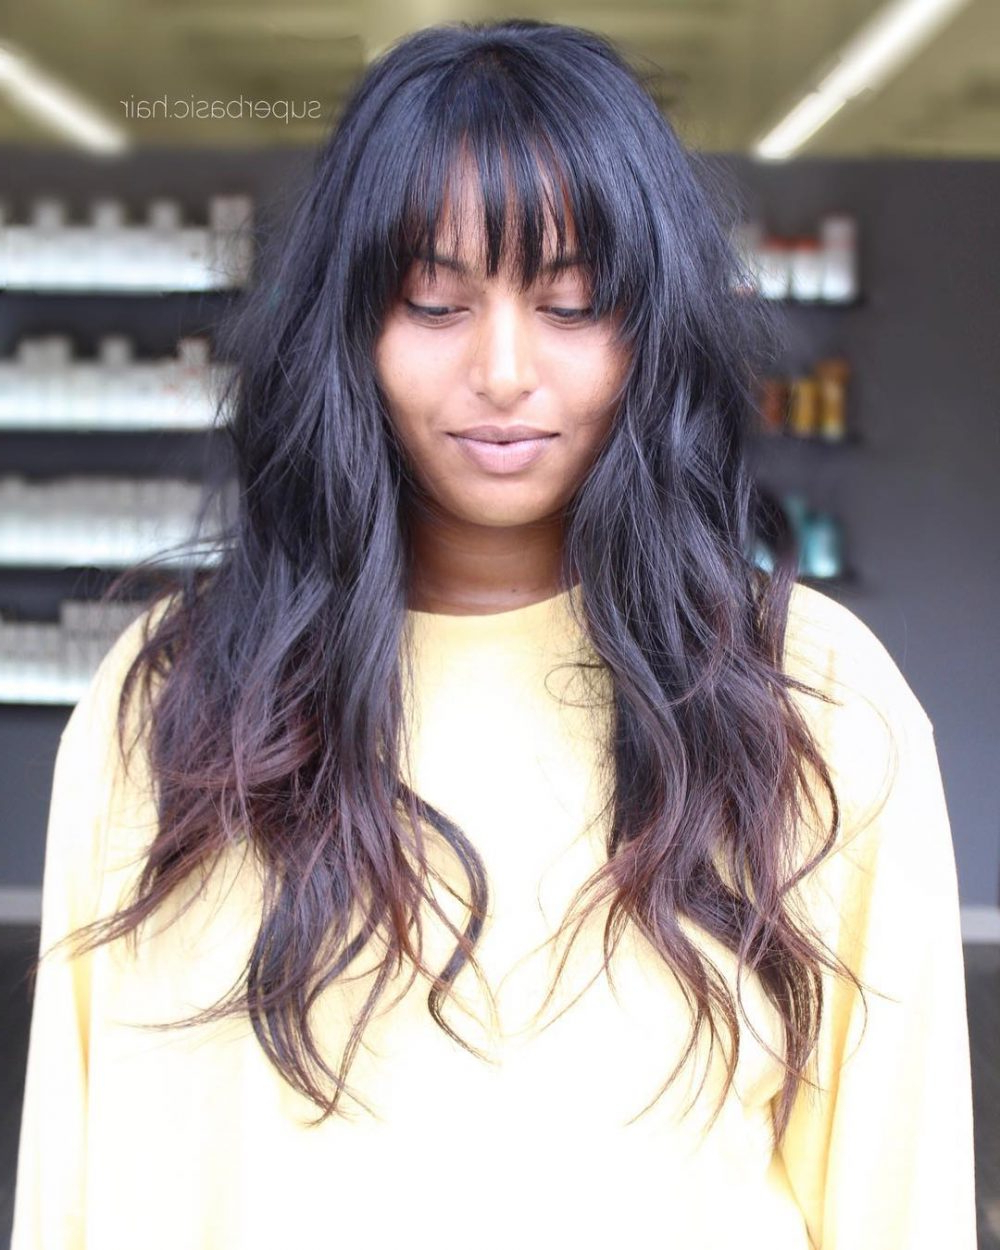 Fashionable Multi Layered Mix Long Hairstyles Throughout Long Shag Haircuts: 36 Examples For 2019 (Gallery 19 of 20)